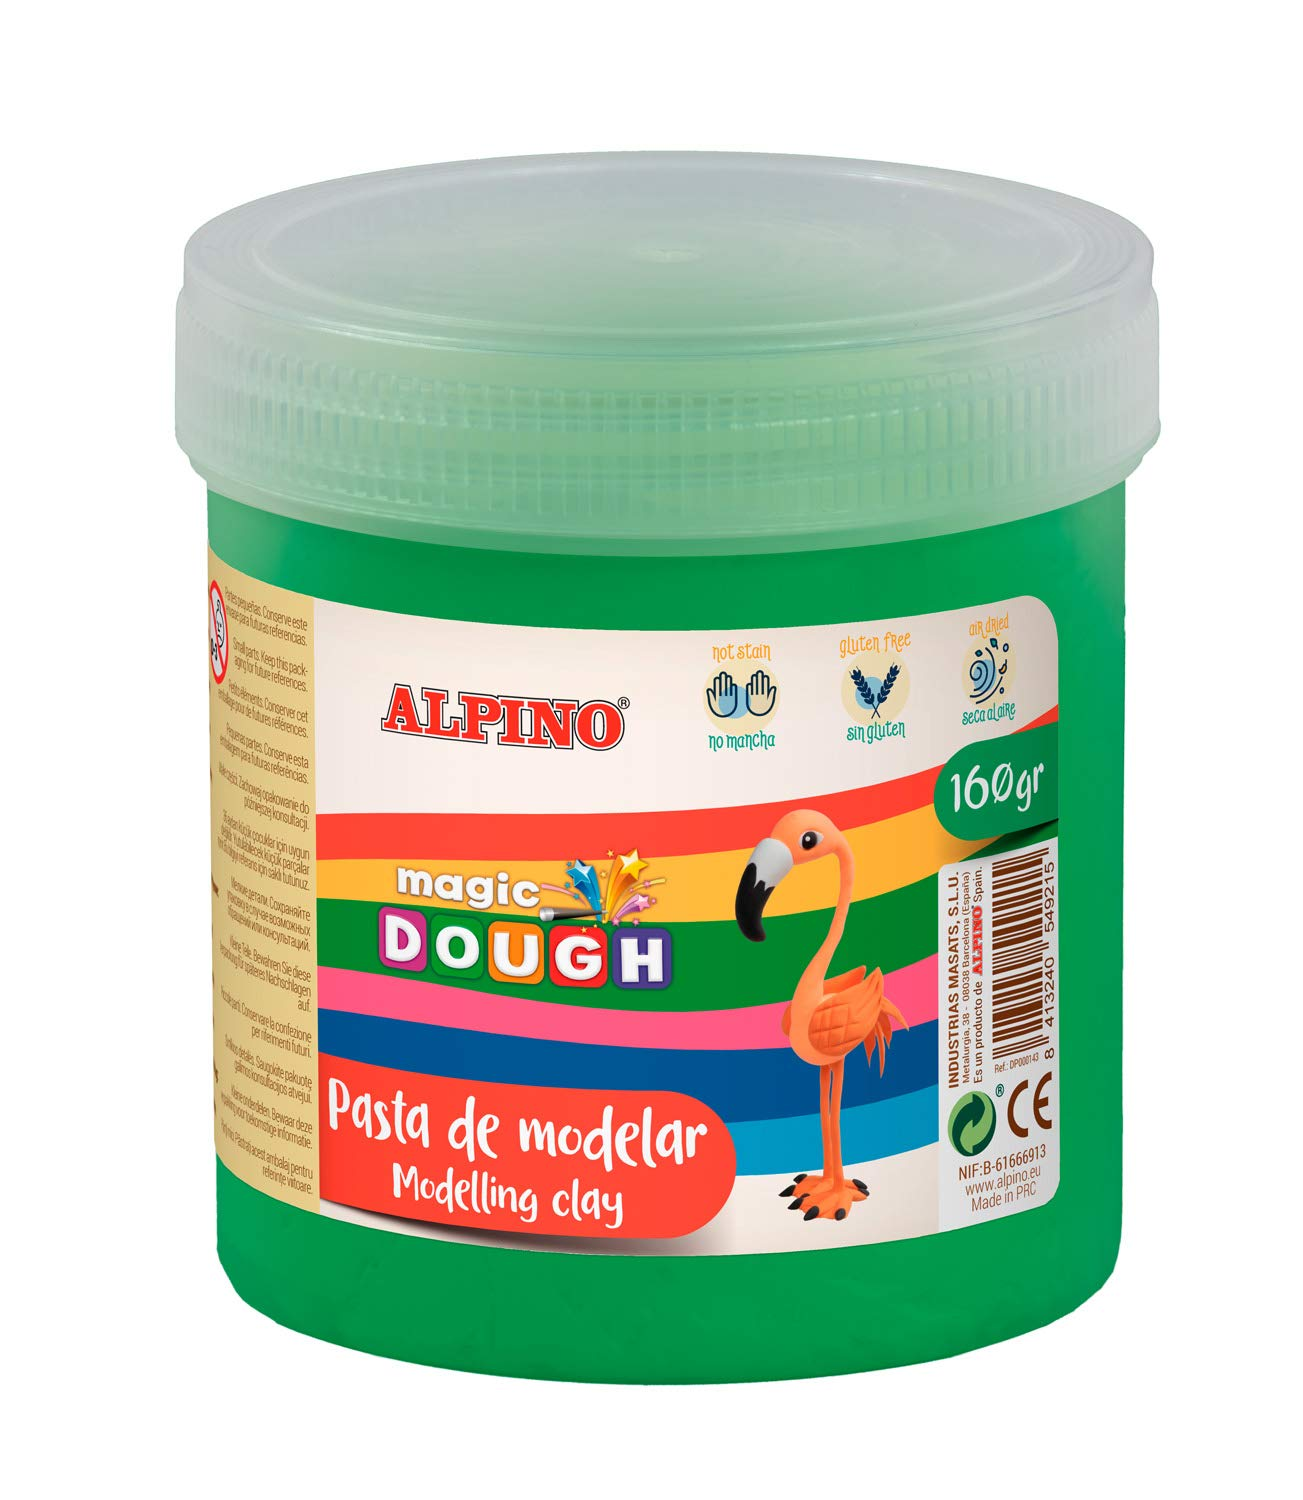 Pasta modelar ALPINO Magic Dough 160g verde DP000147